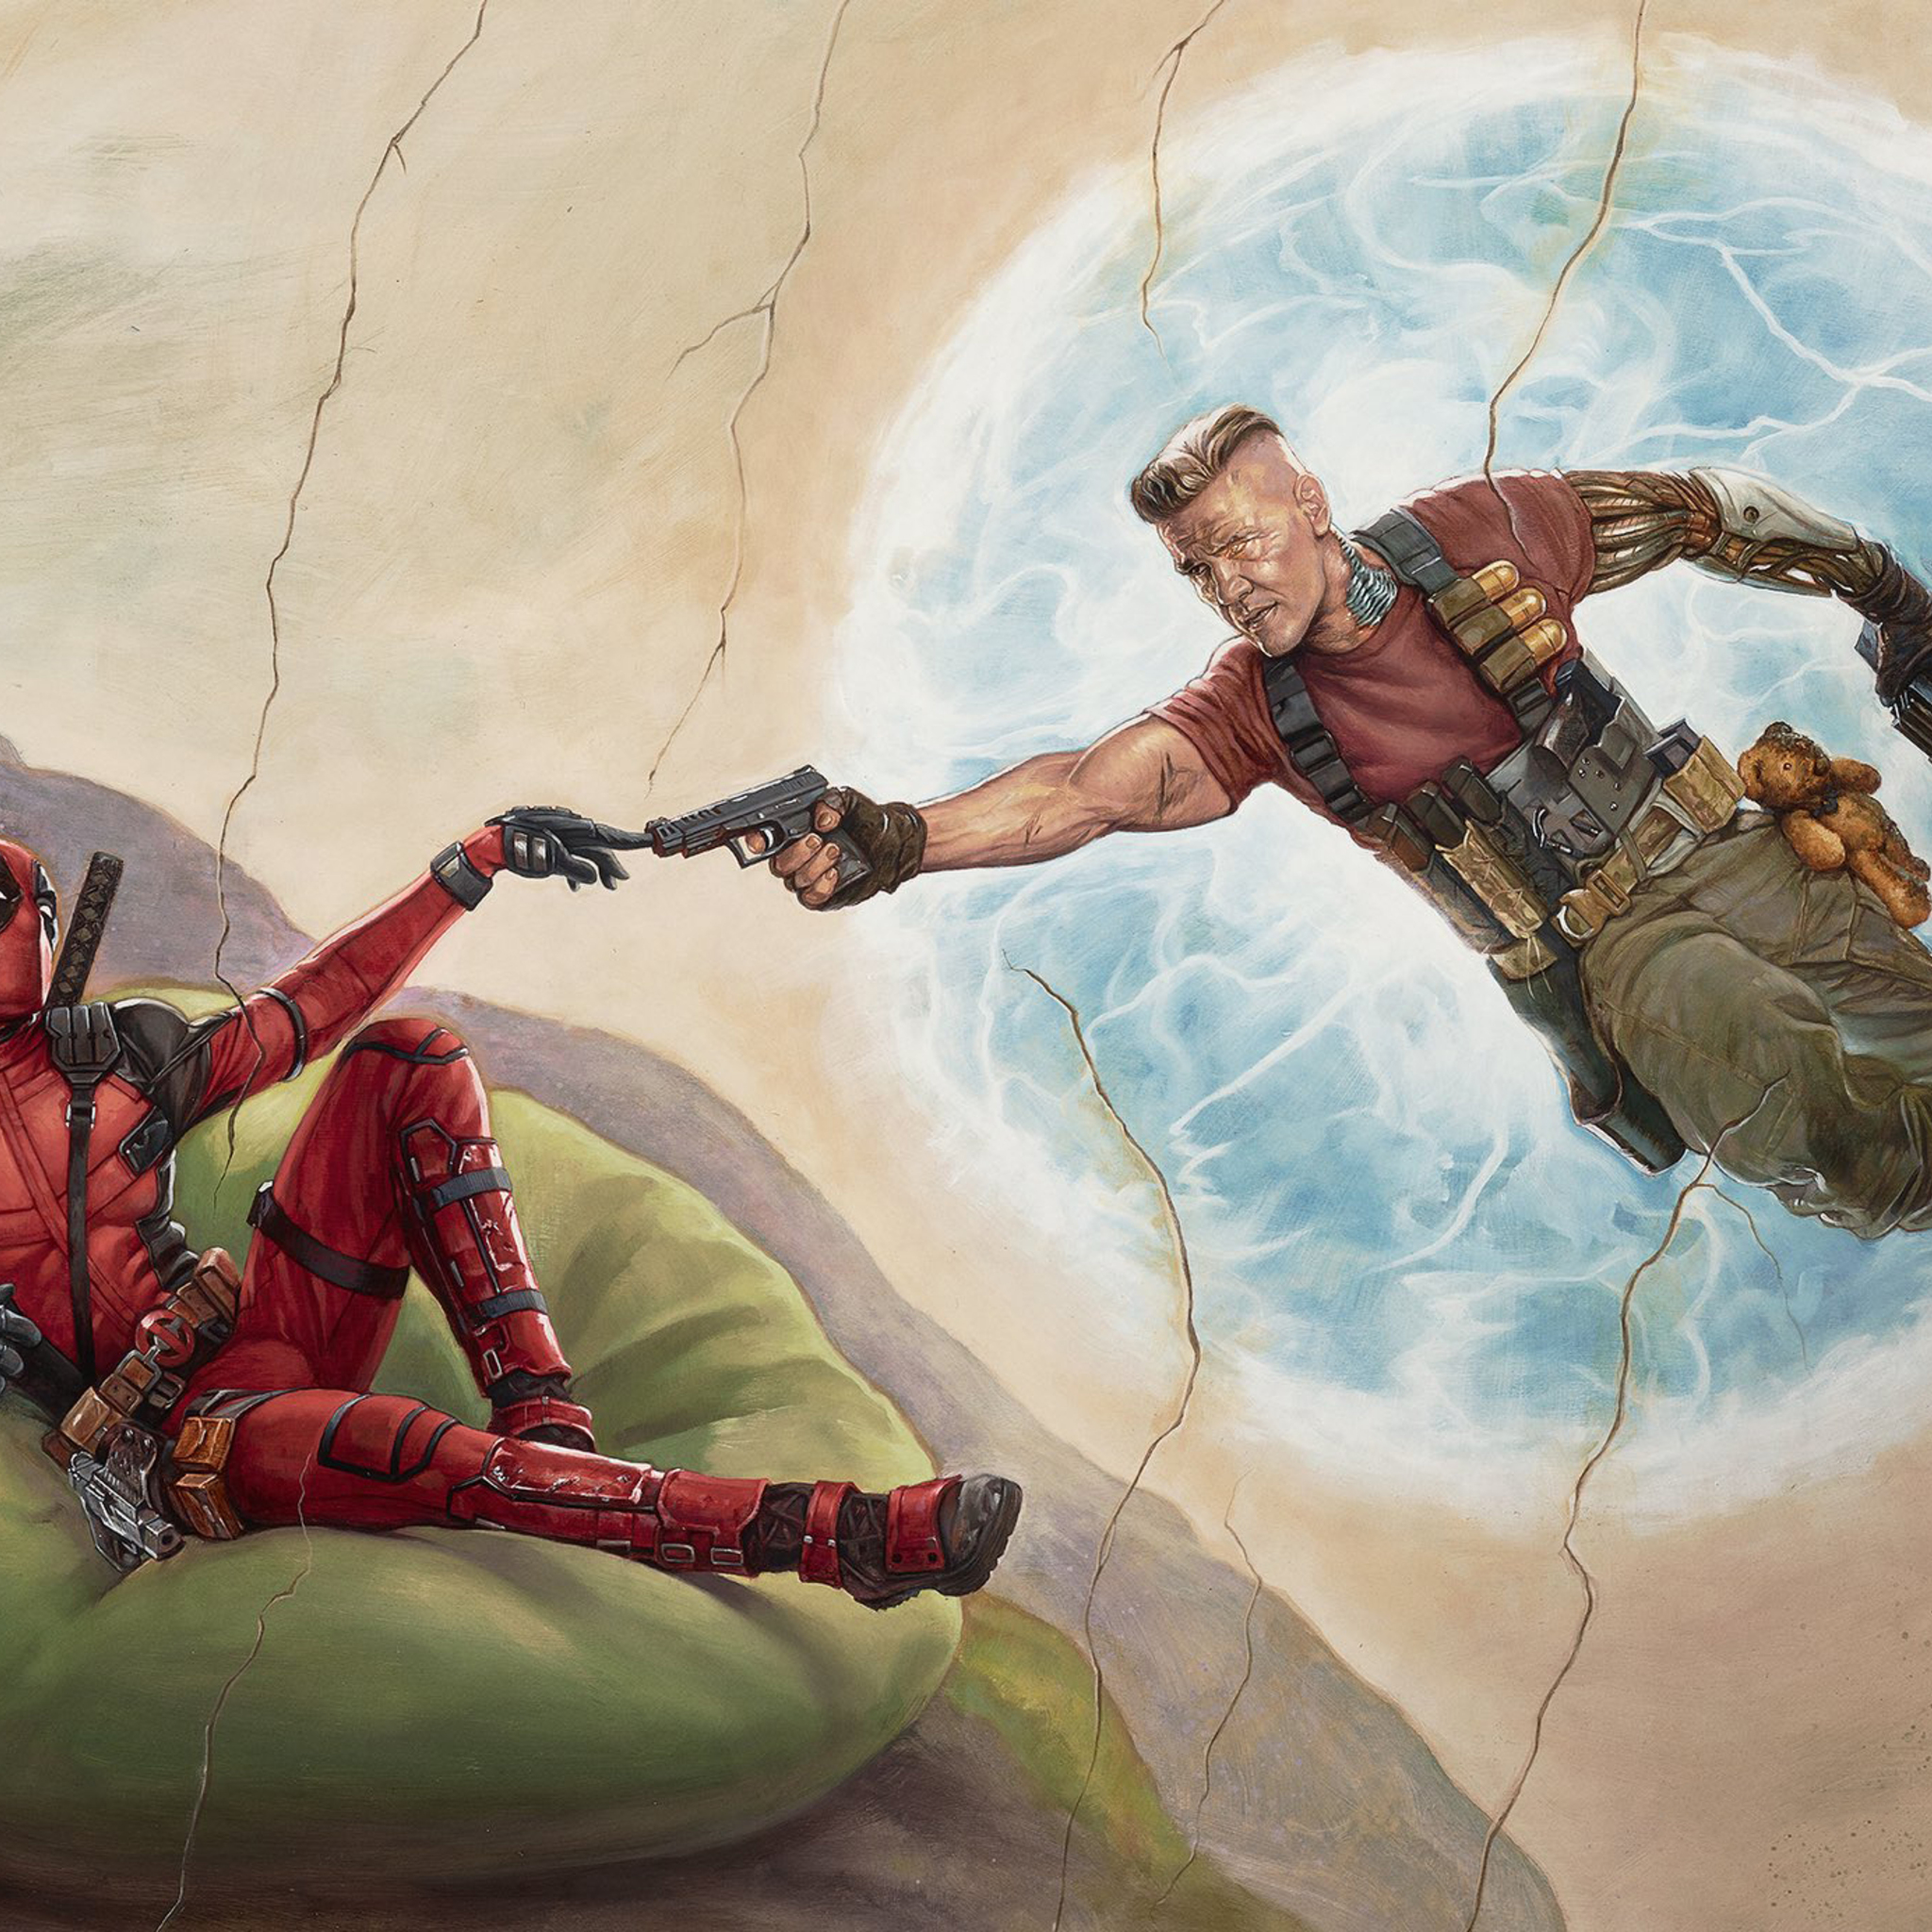 Sauth Hd Movies Download 2018 2: 2048x2048 Deadpool 2 2018 Movie Poster Ipad Air HD 4k